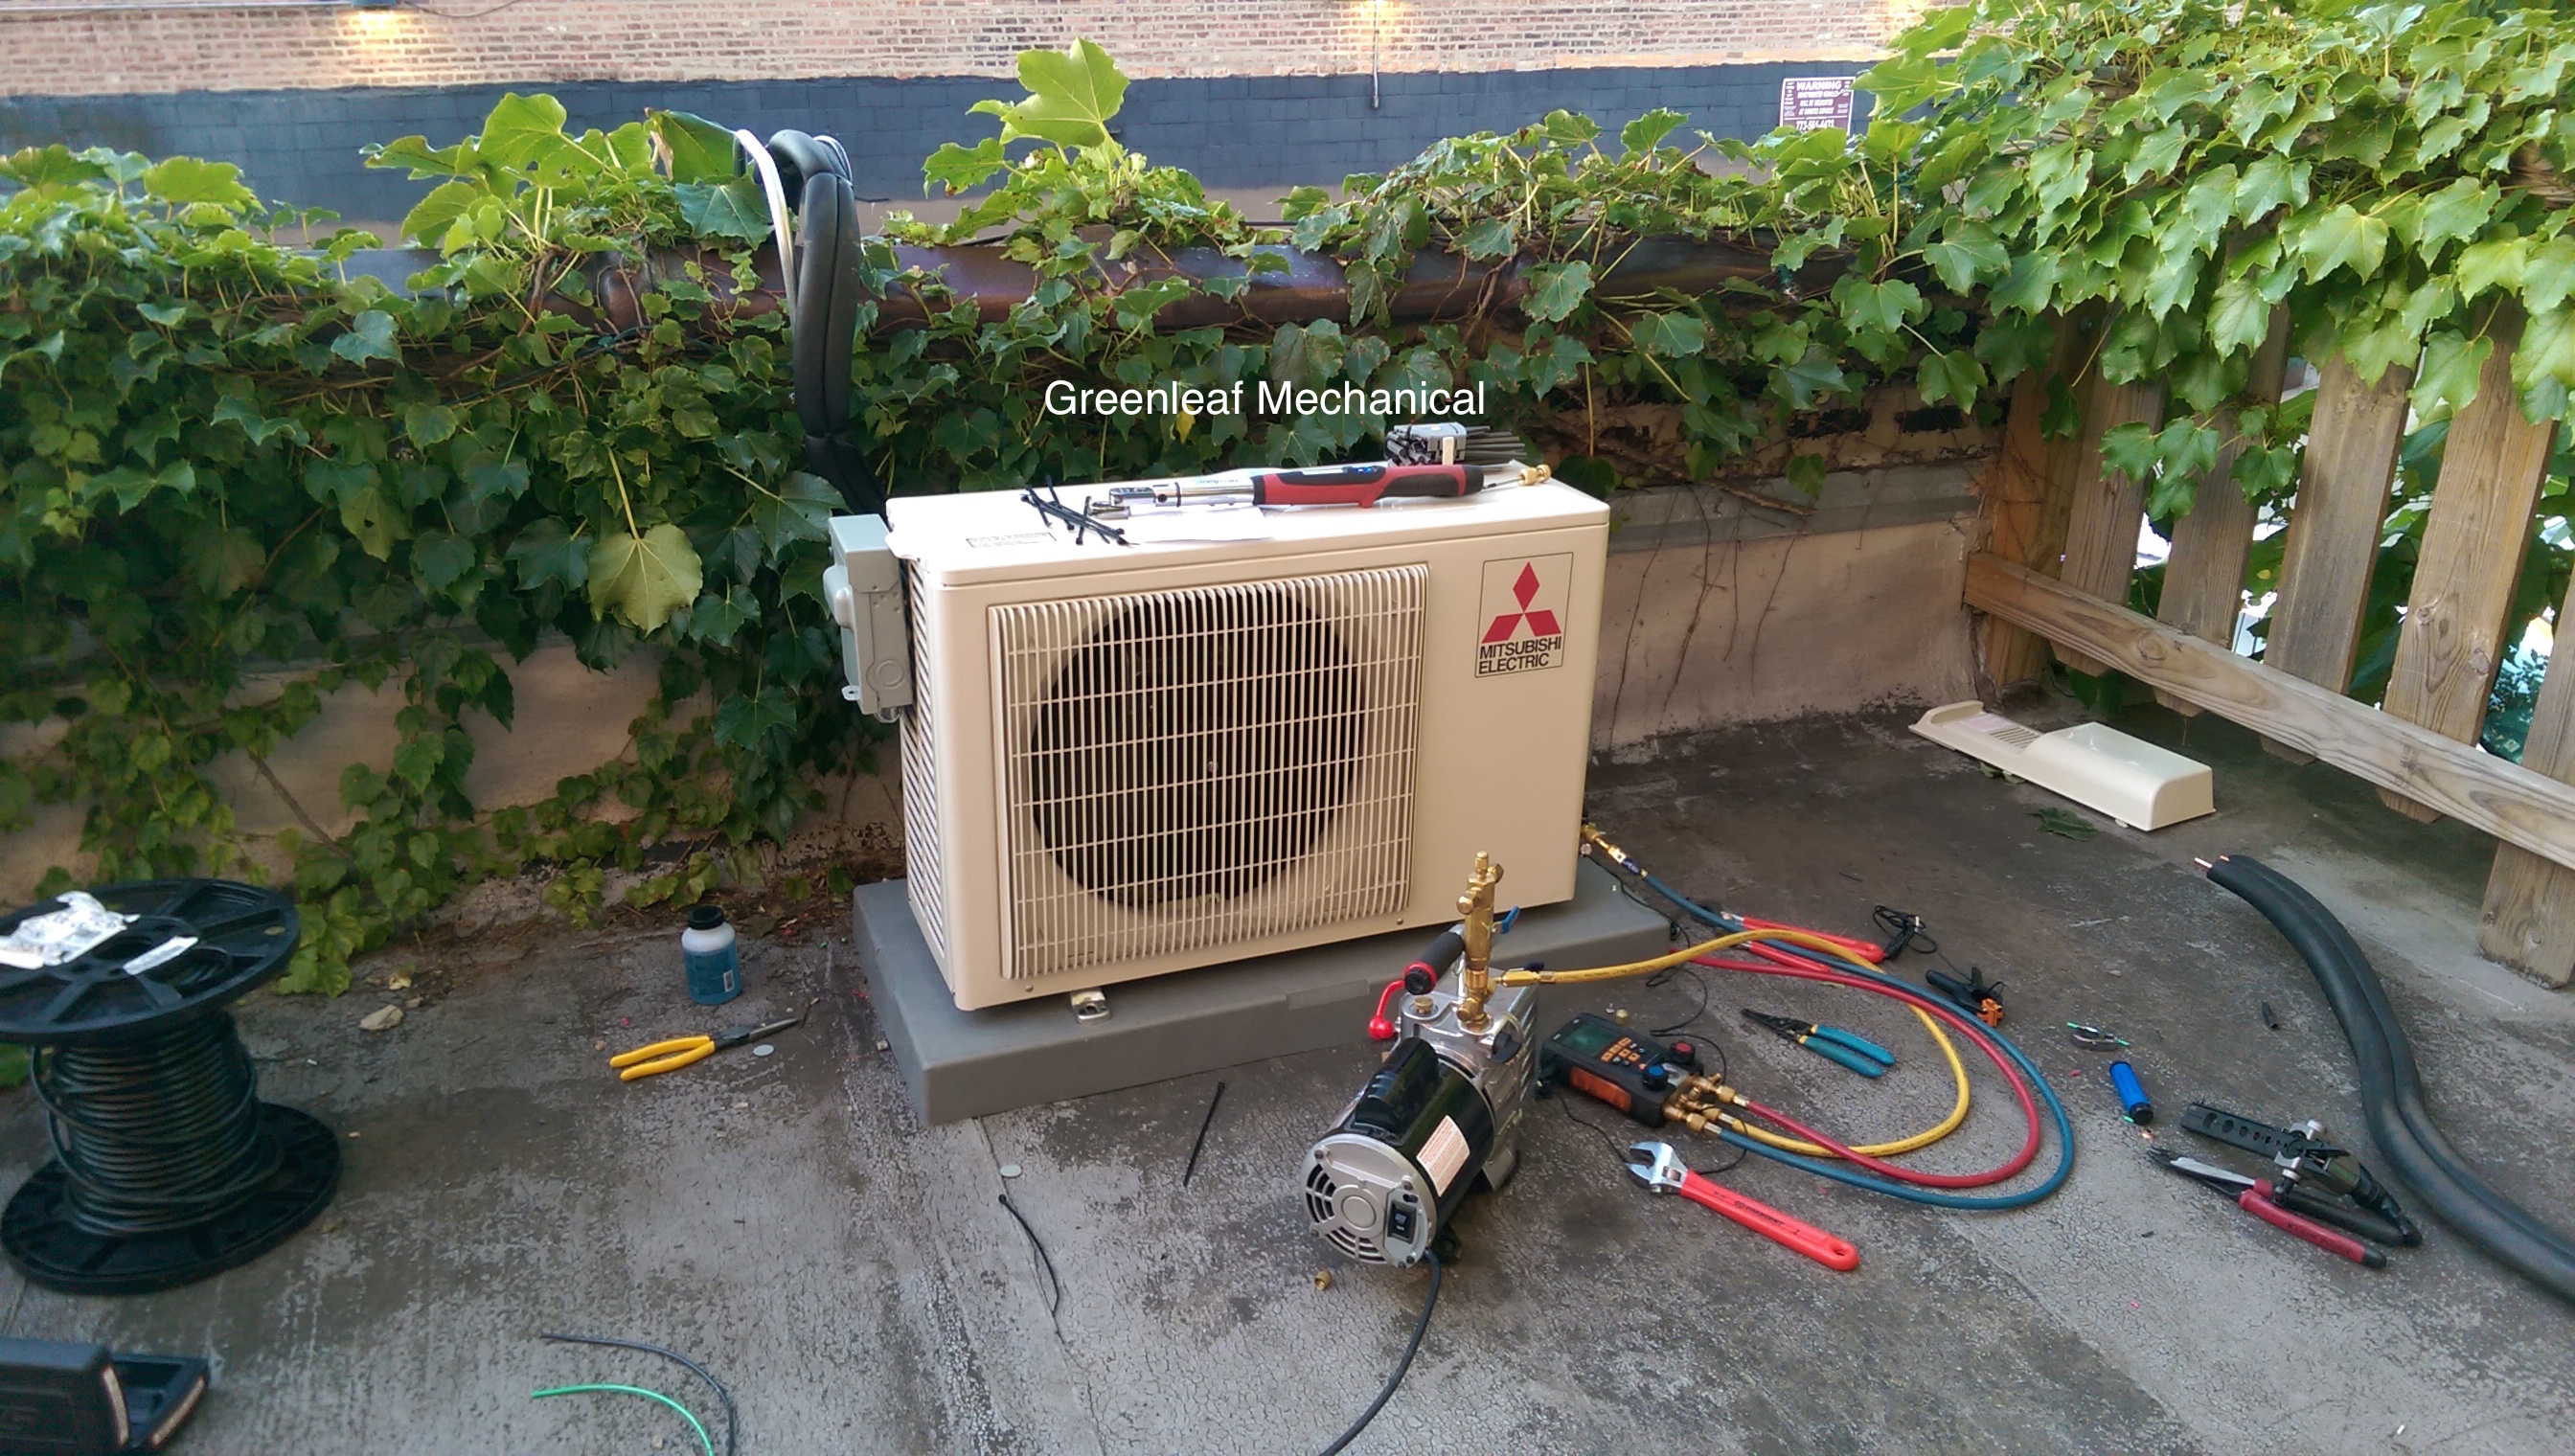 #496033 Mini Split Ductless Air Conditioning Furnace Repair  Highly Rated 5269 Mini Split Heating Cooling wallpapers with 2688x1520 px on helpvideos.info - Air Conditioners, Air Coolers and more